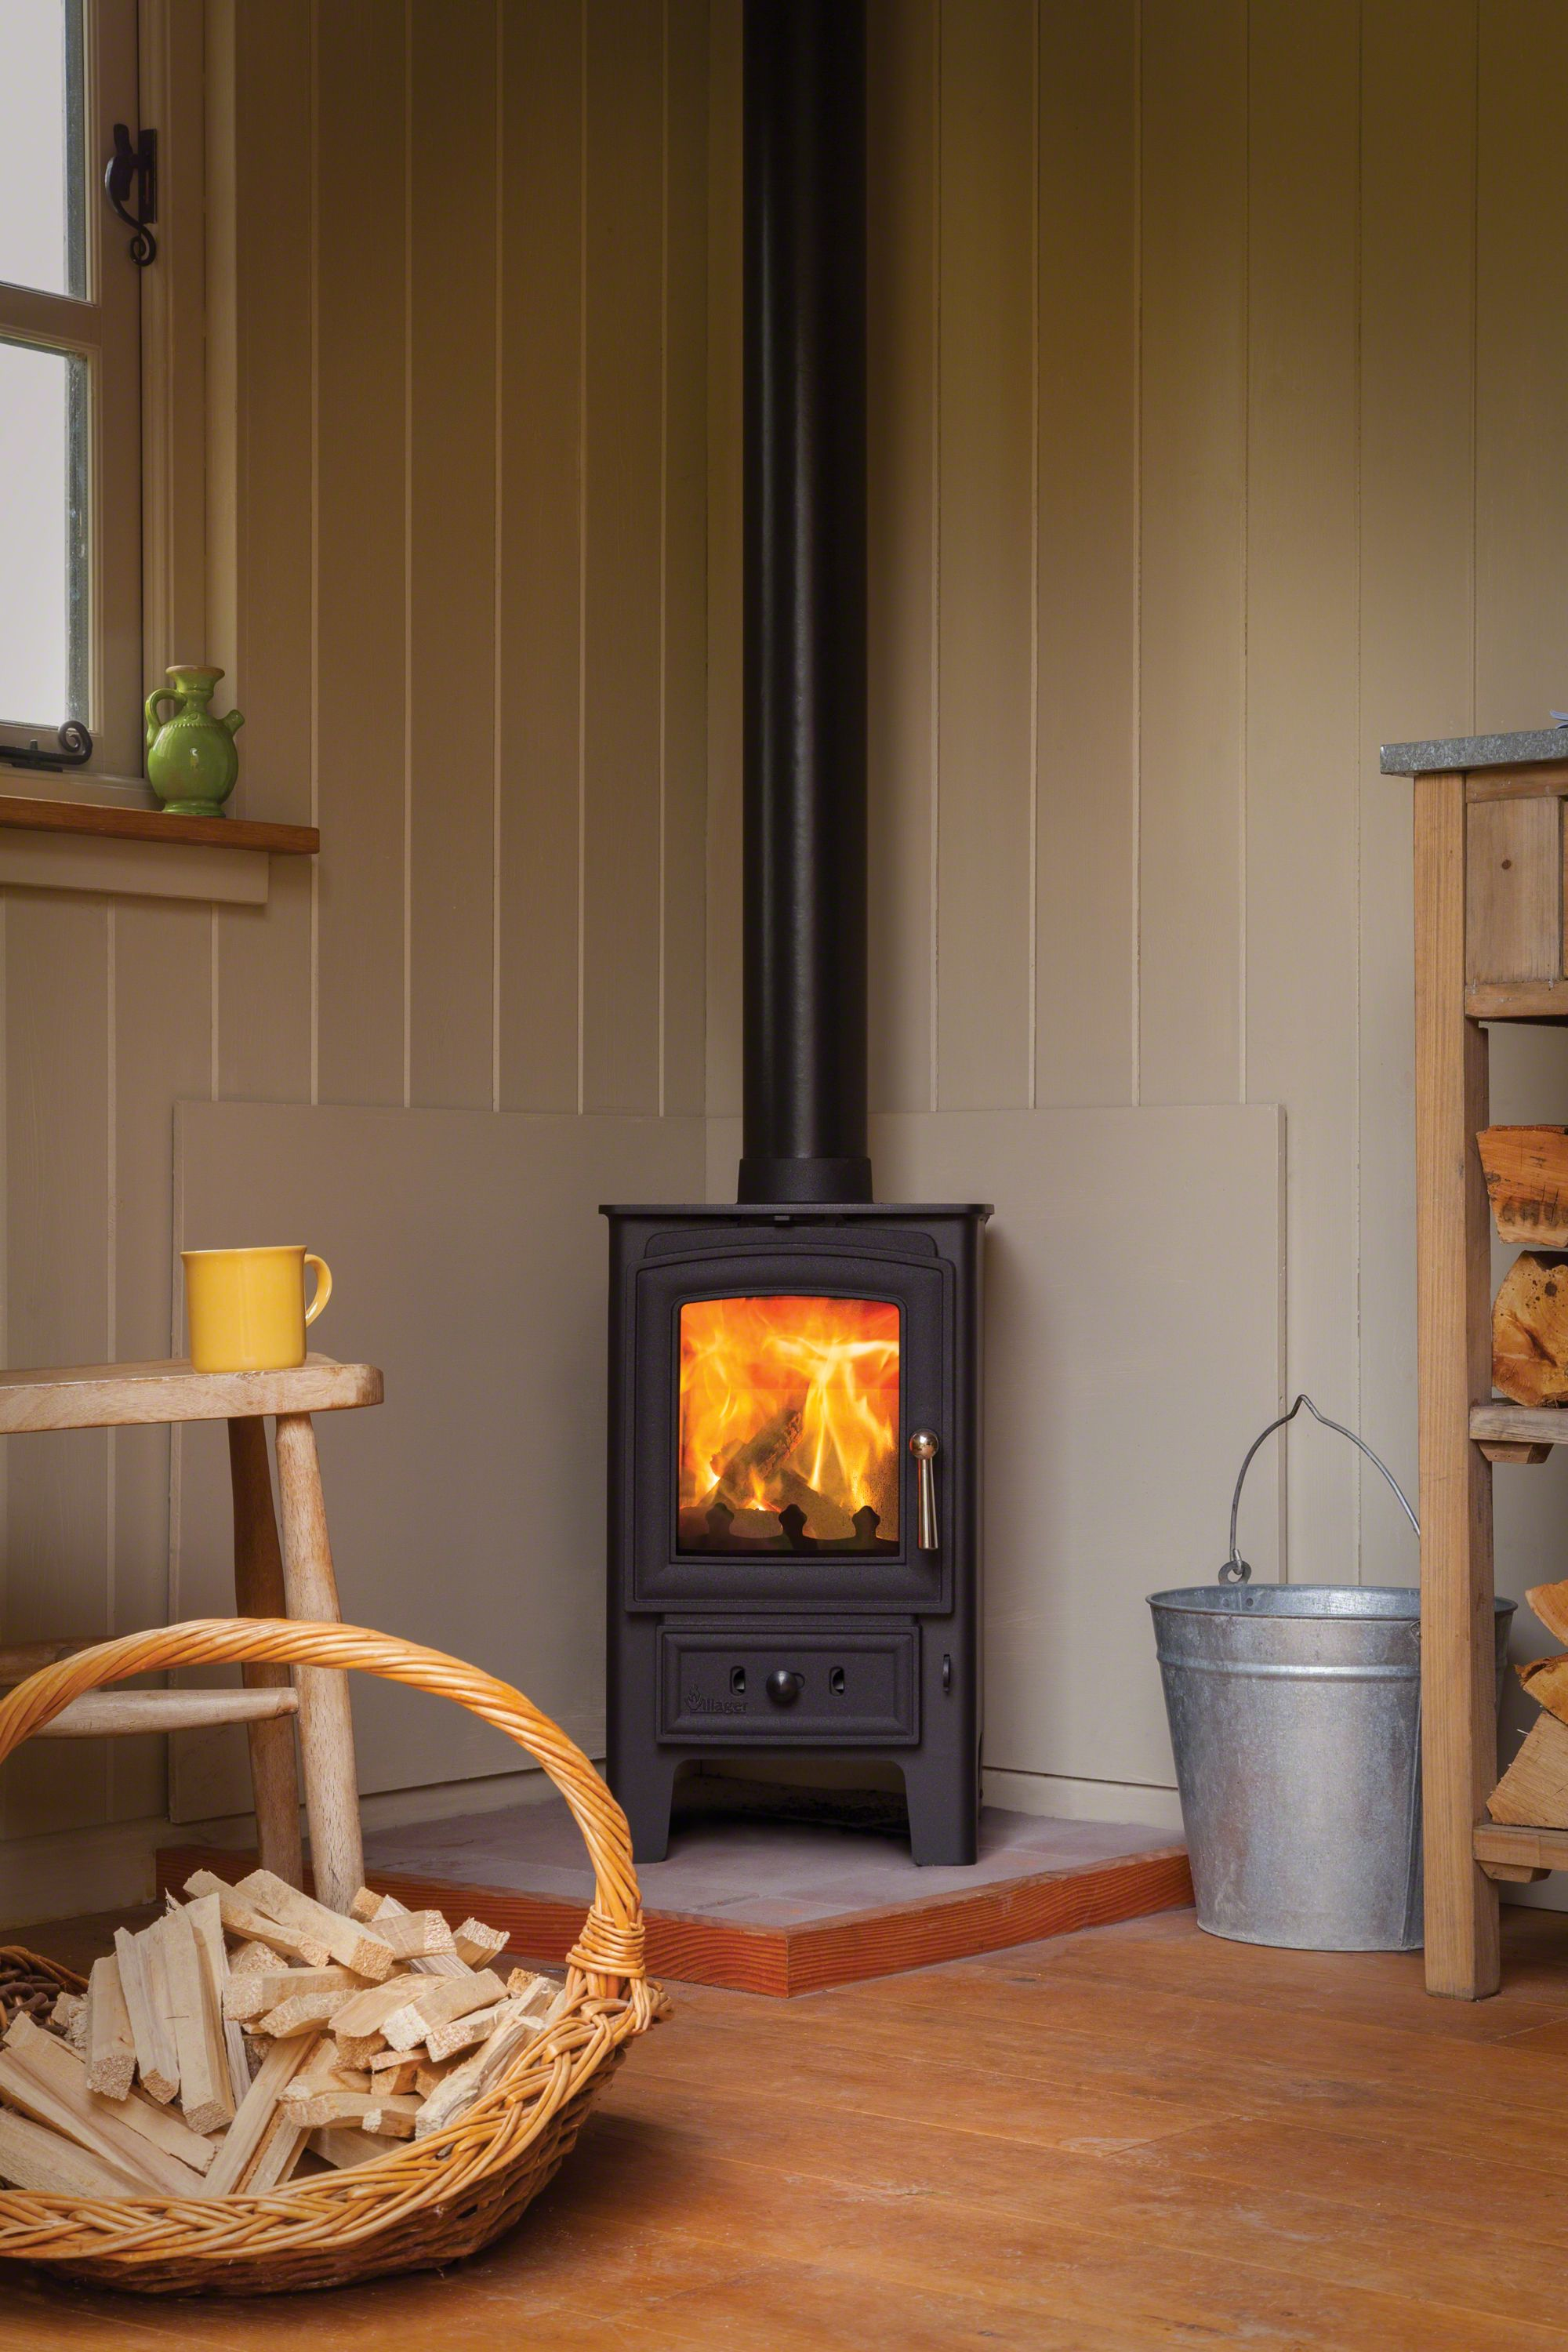 The Villager Range From Arada Stoves Are Sturdy